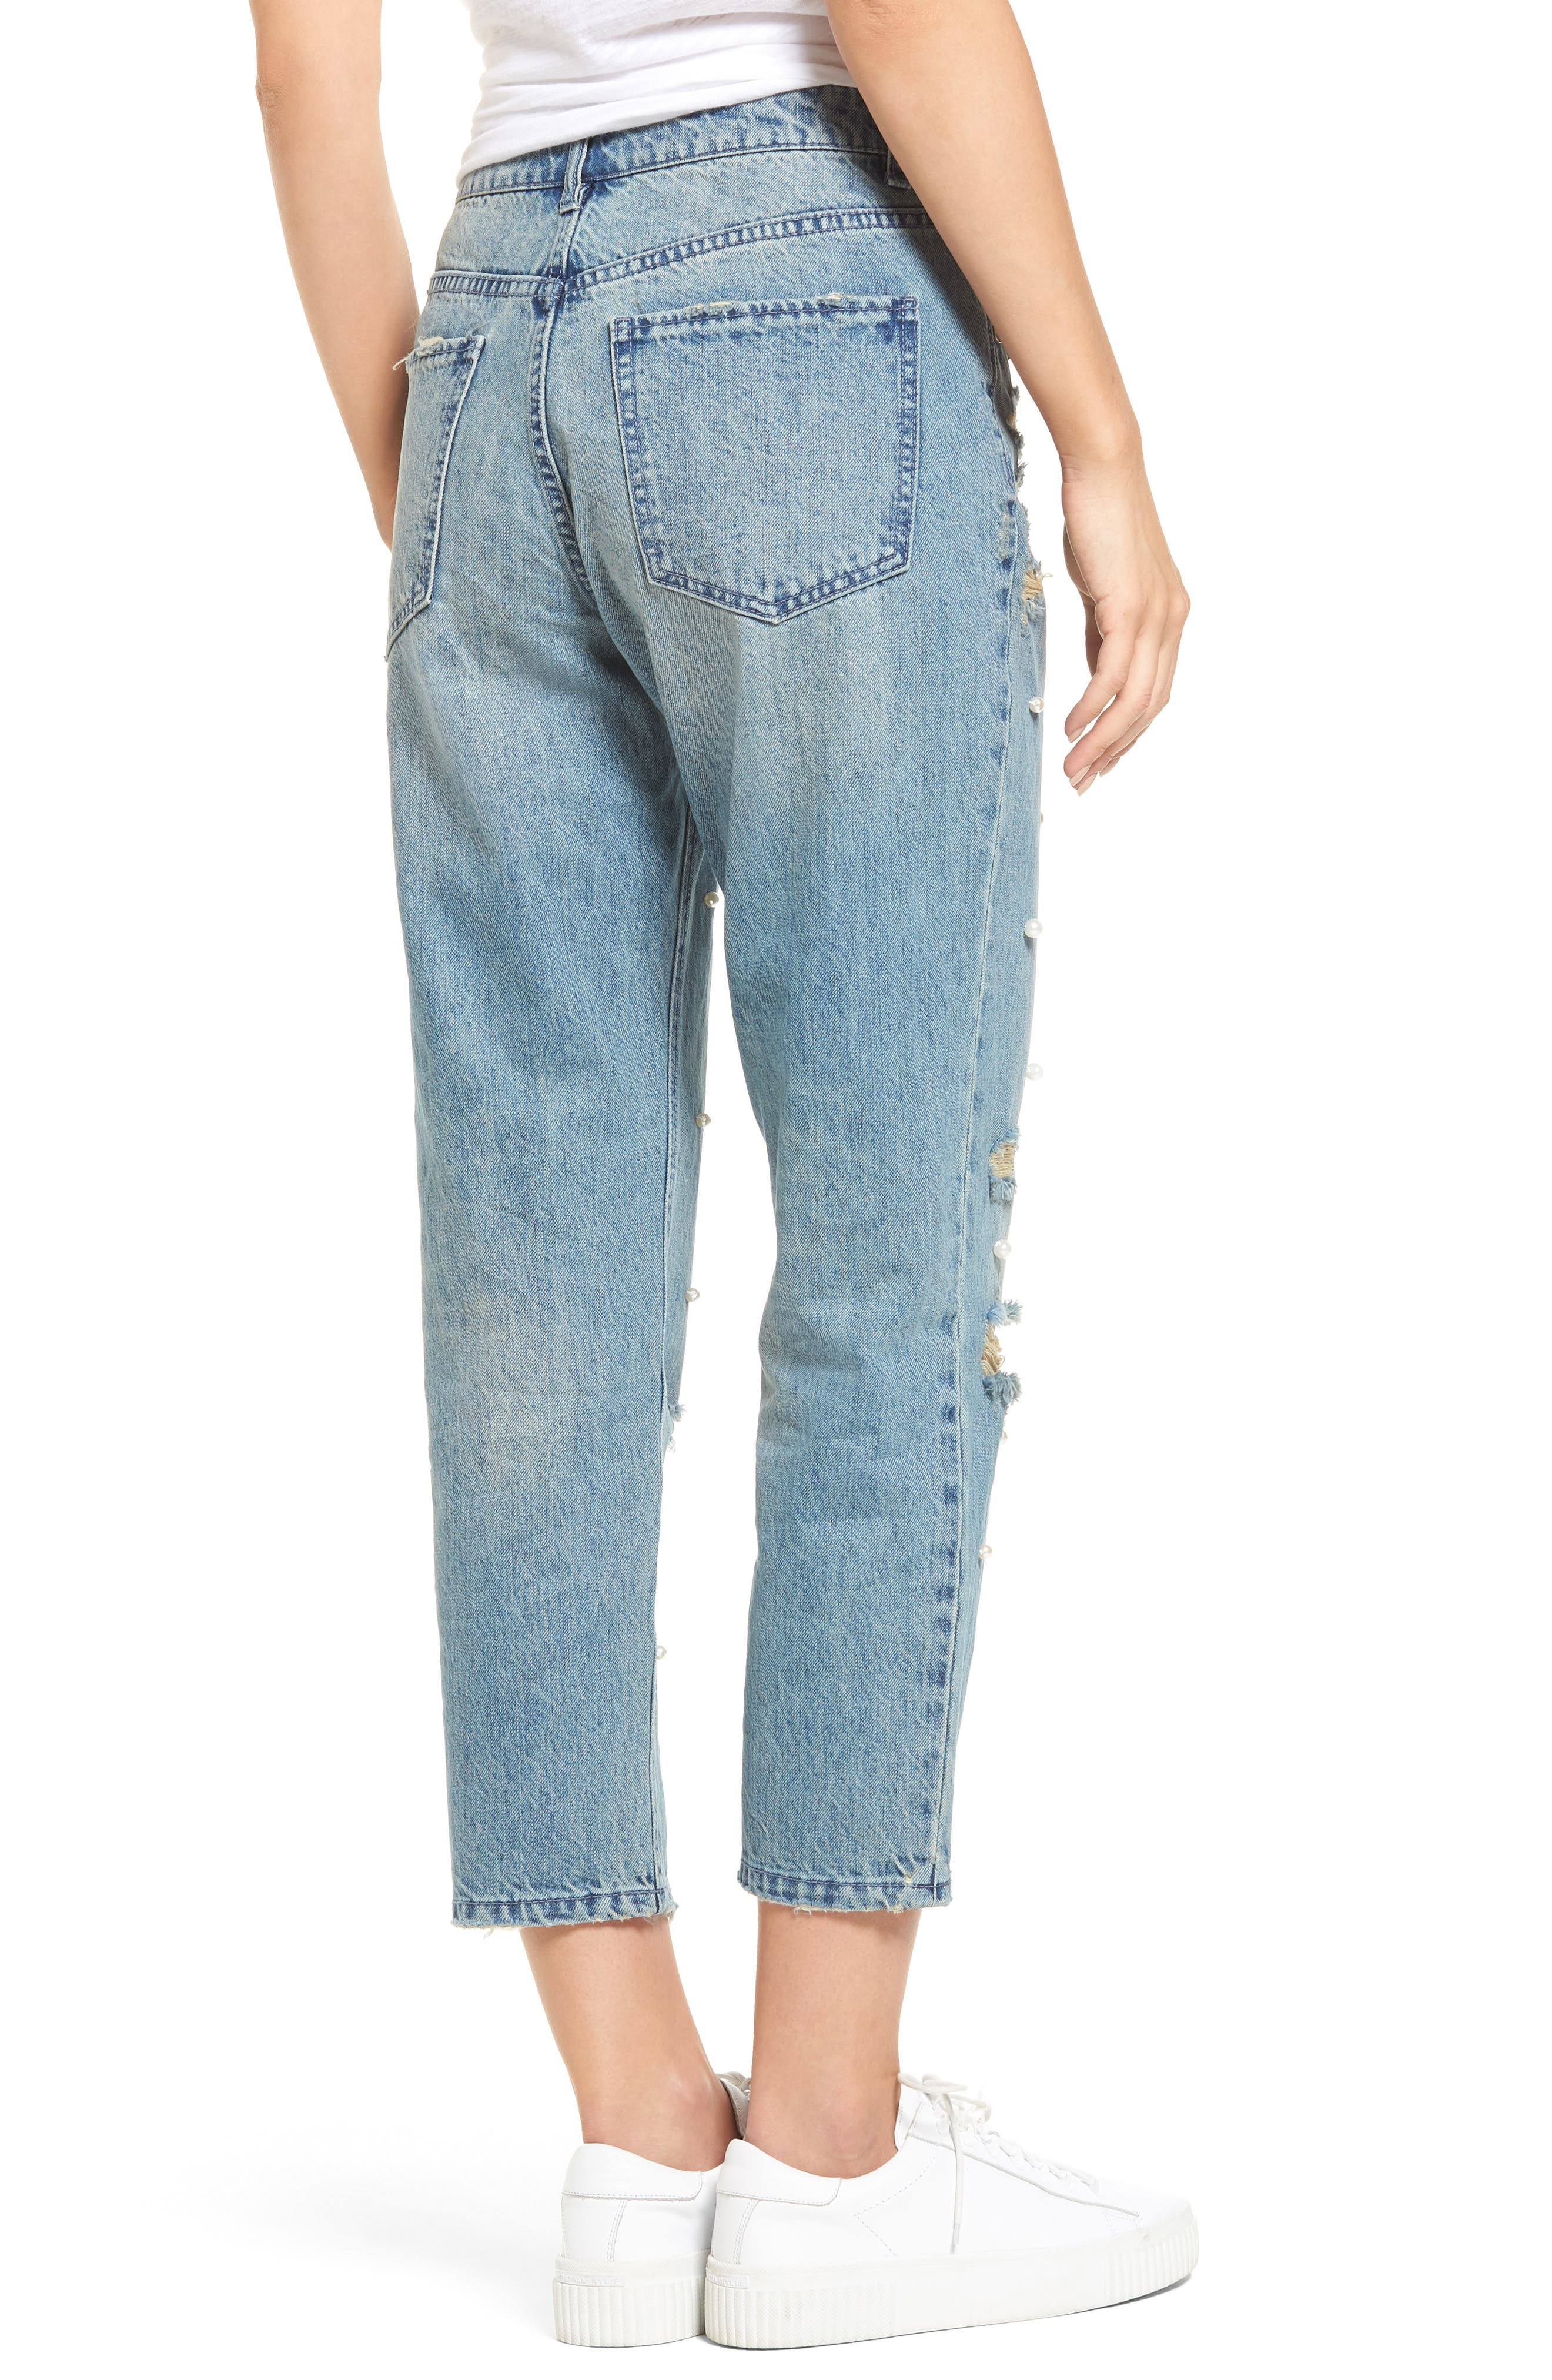 Distressed Pearl Boyfriend Jeans,                             Alternate thumbnail 2, color,                             430